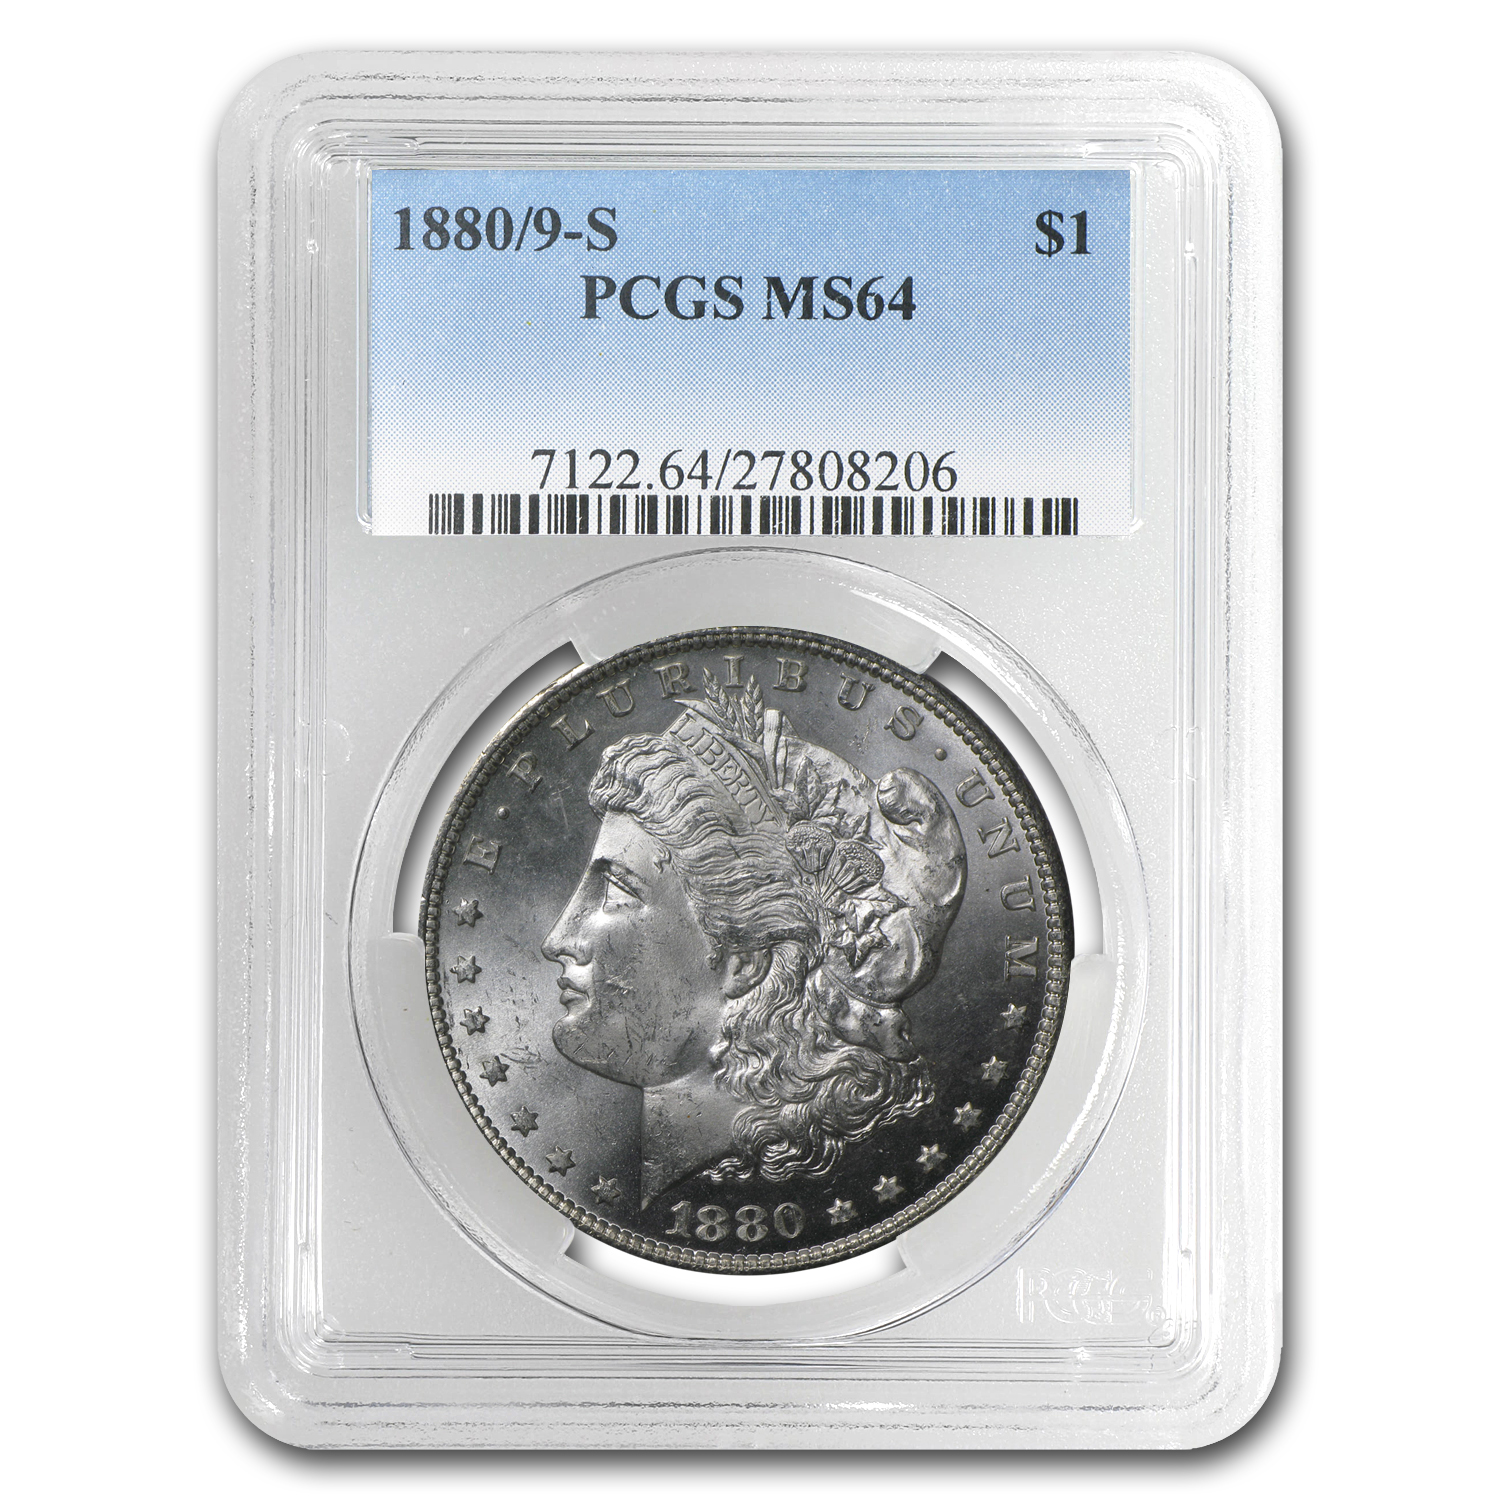 1880/9-S Morgan Dollar - MS-64 PCGS VAM-11 0/9 Overdate Hot-50